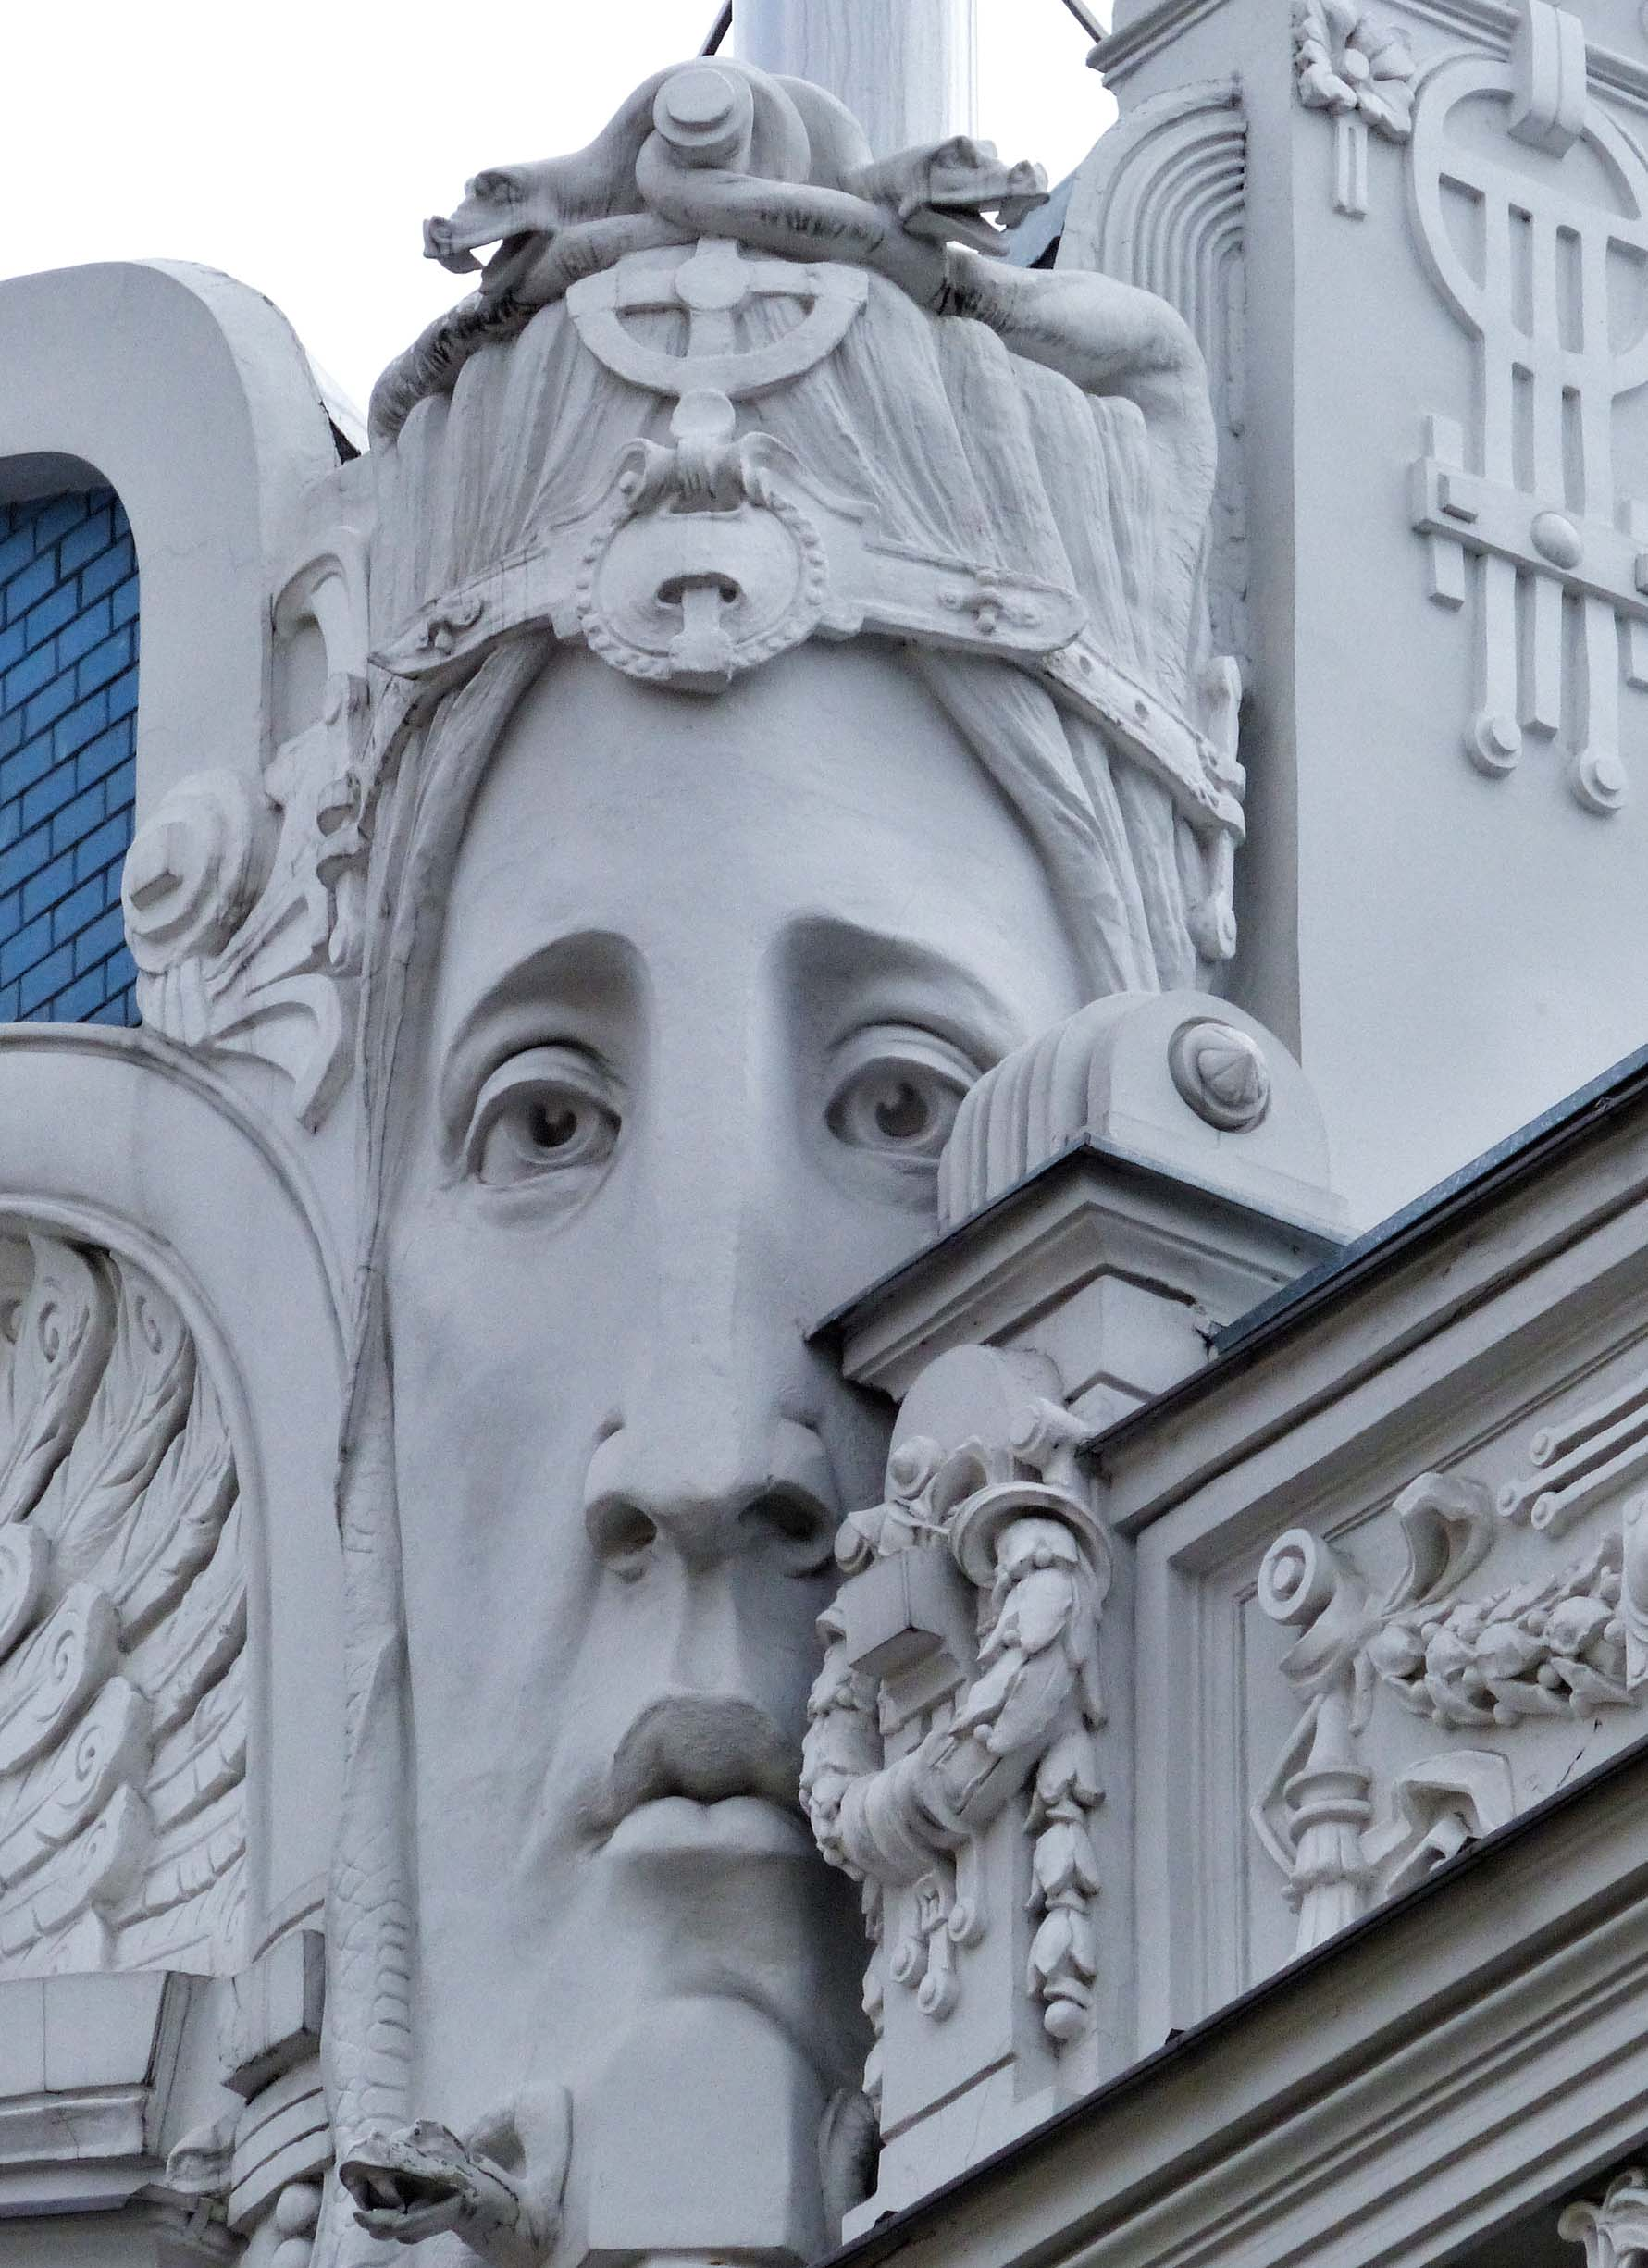 Large female face carved in white stone